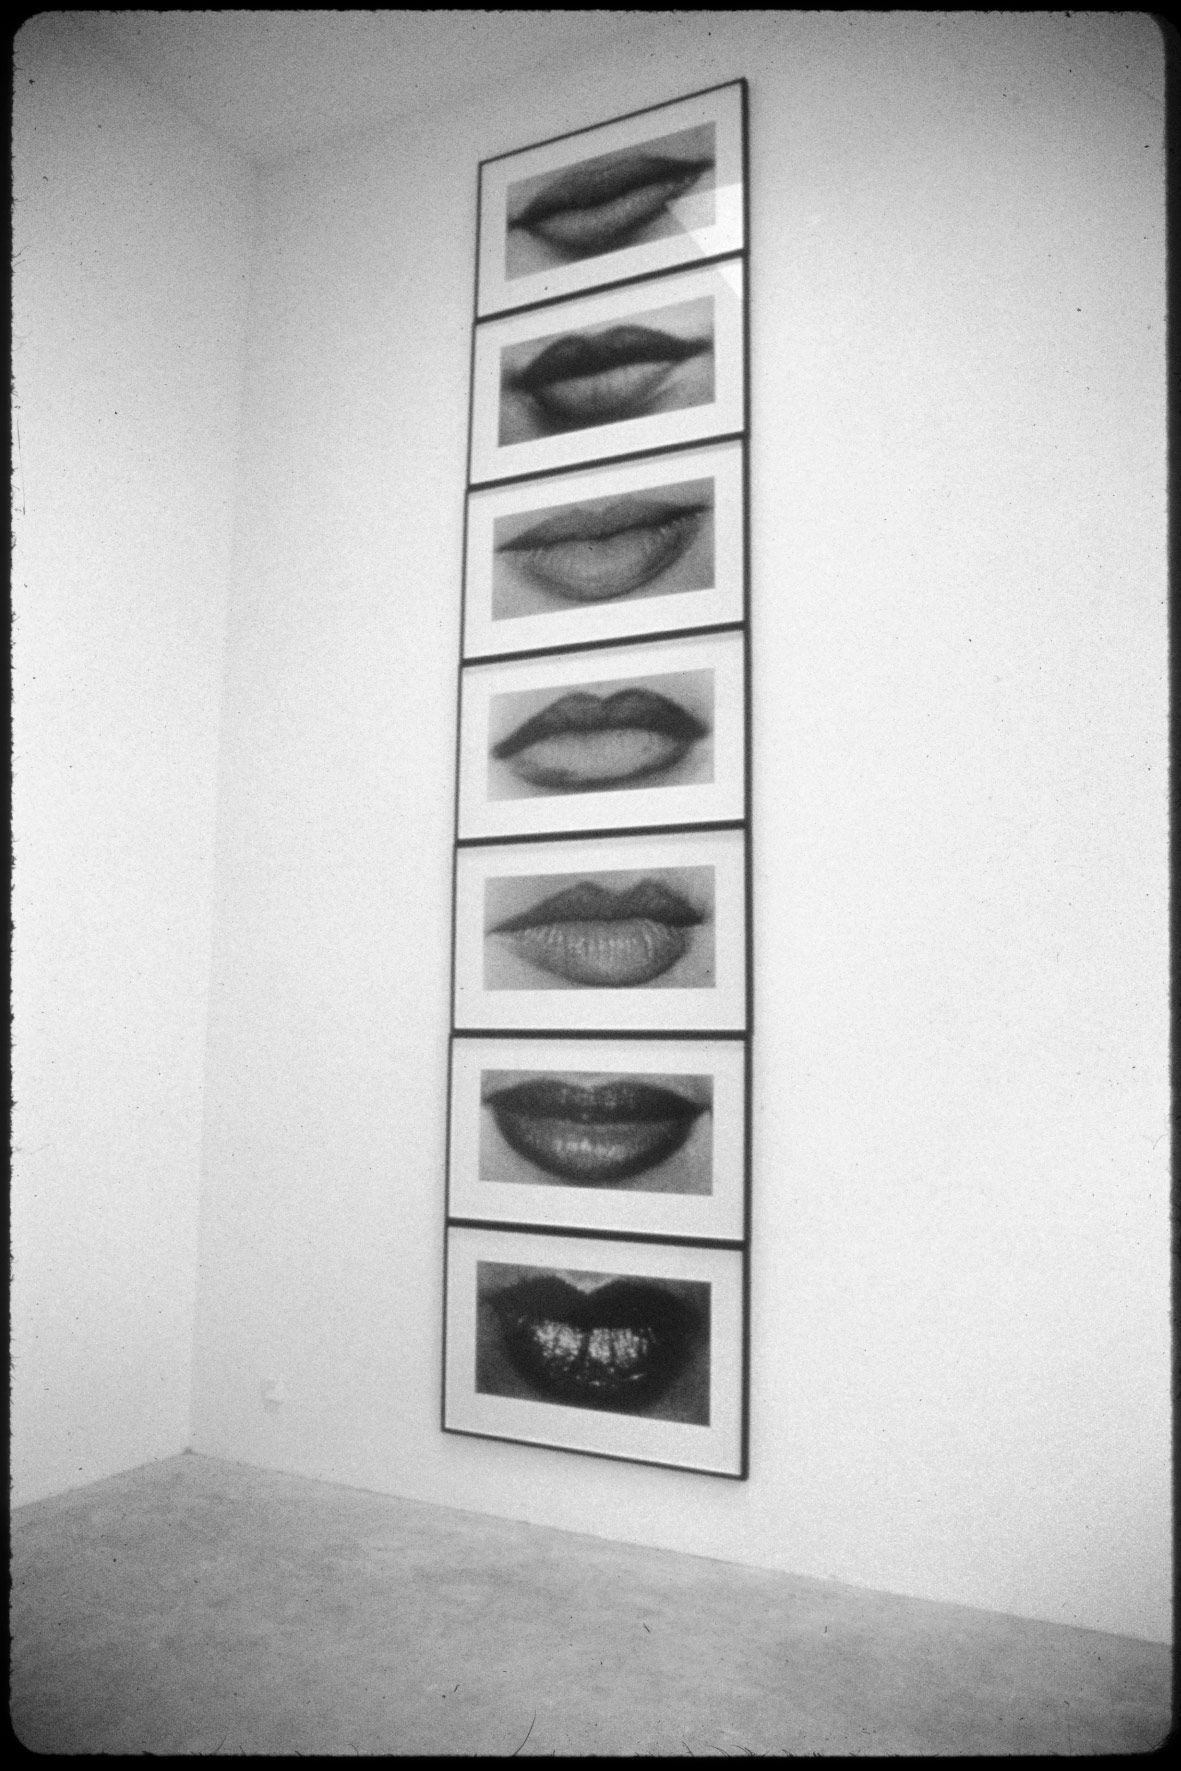 Stack of Lips, 1995